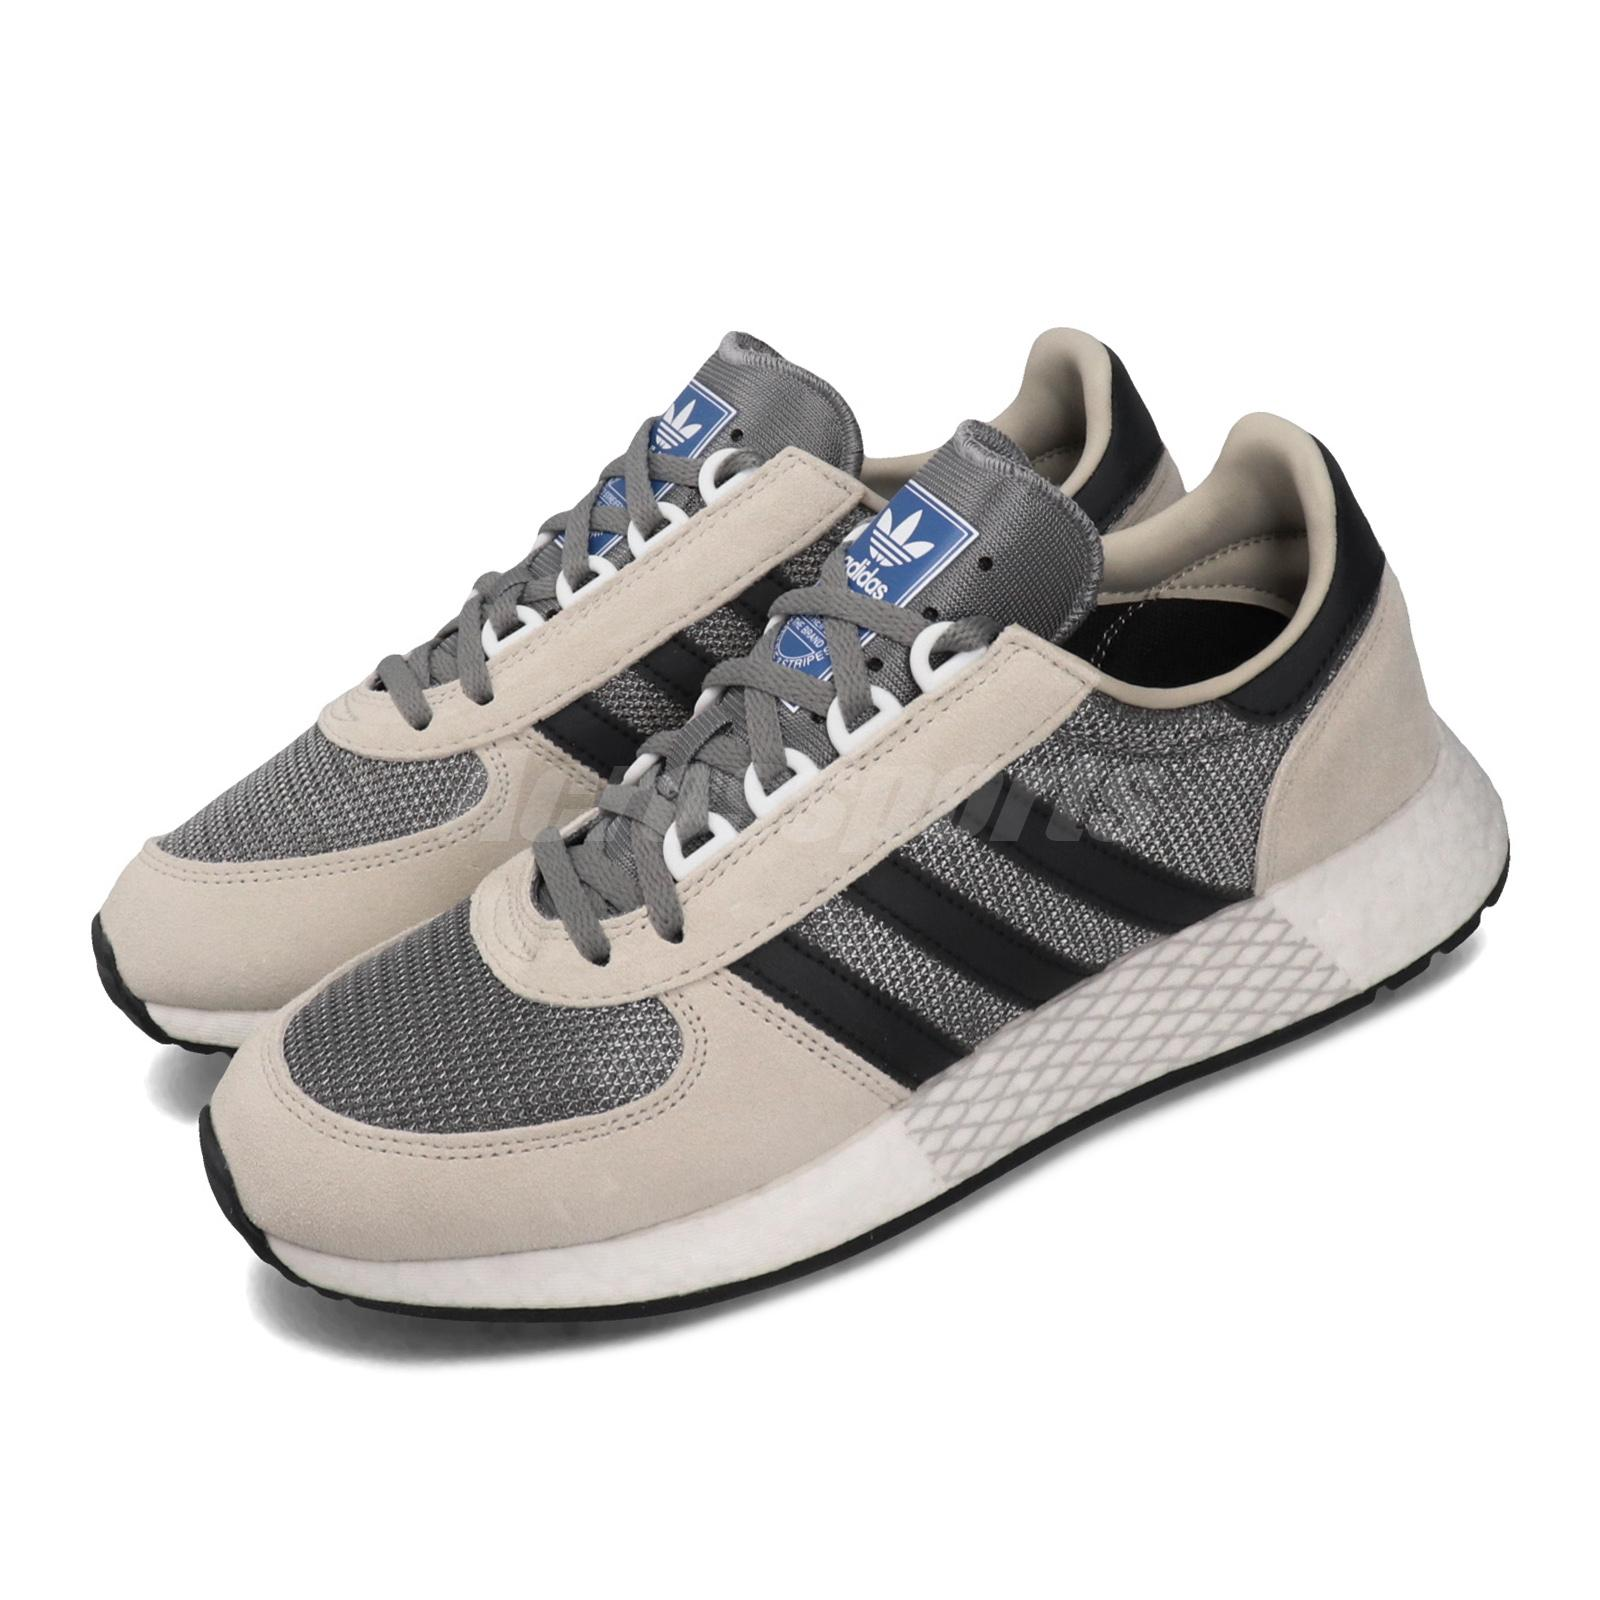 Resaltar Tortuga cubierta  adidas Originals Marathon Tech Brown Black Grey Mens Lifestyle Run Shoes  G27520 | eBay